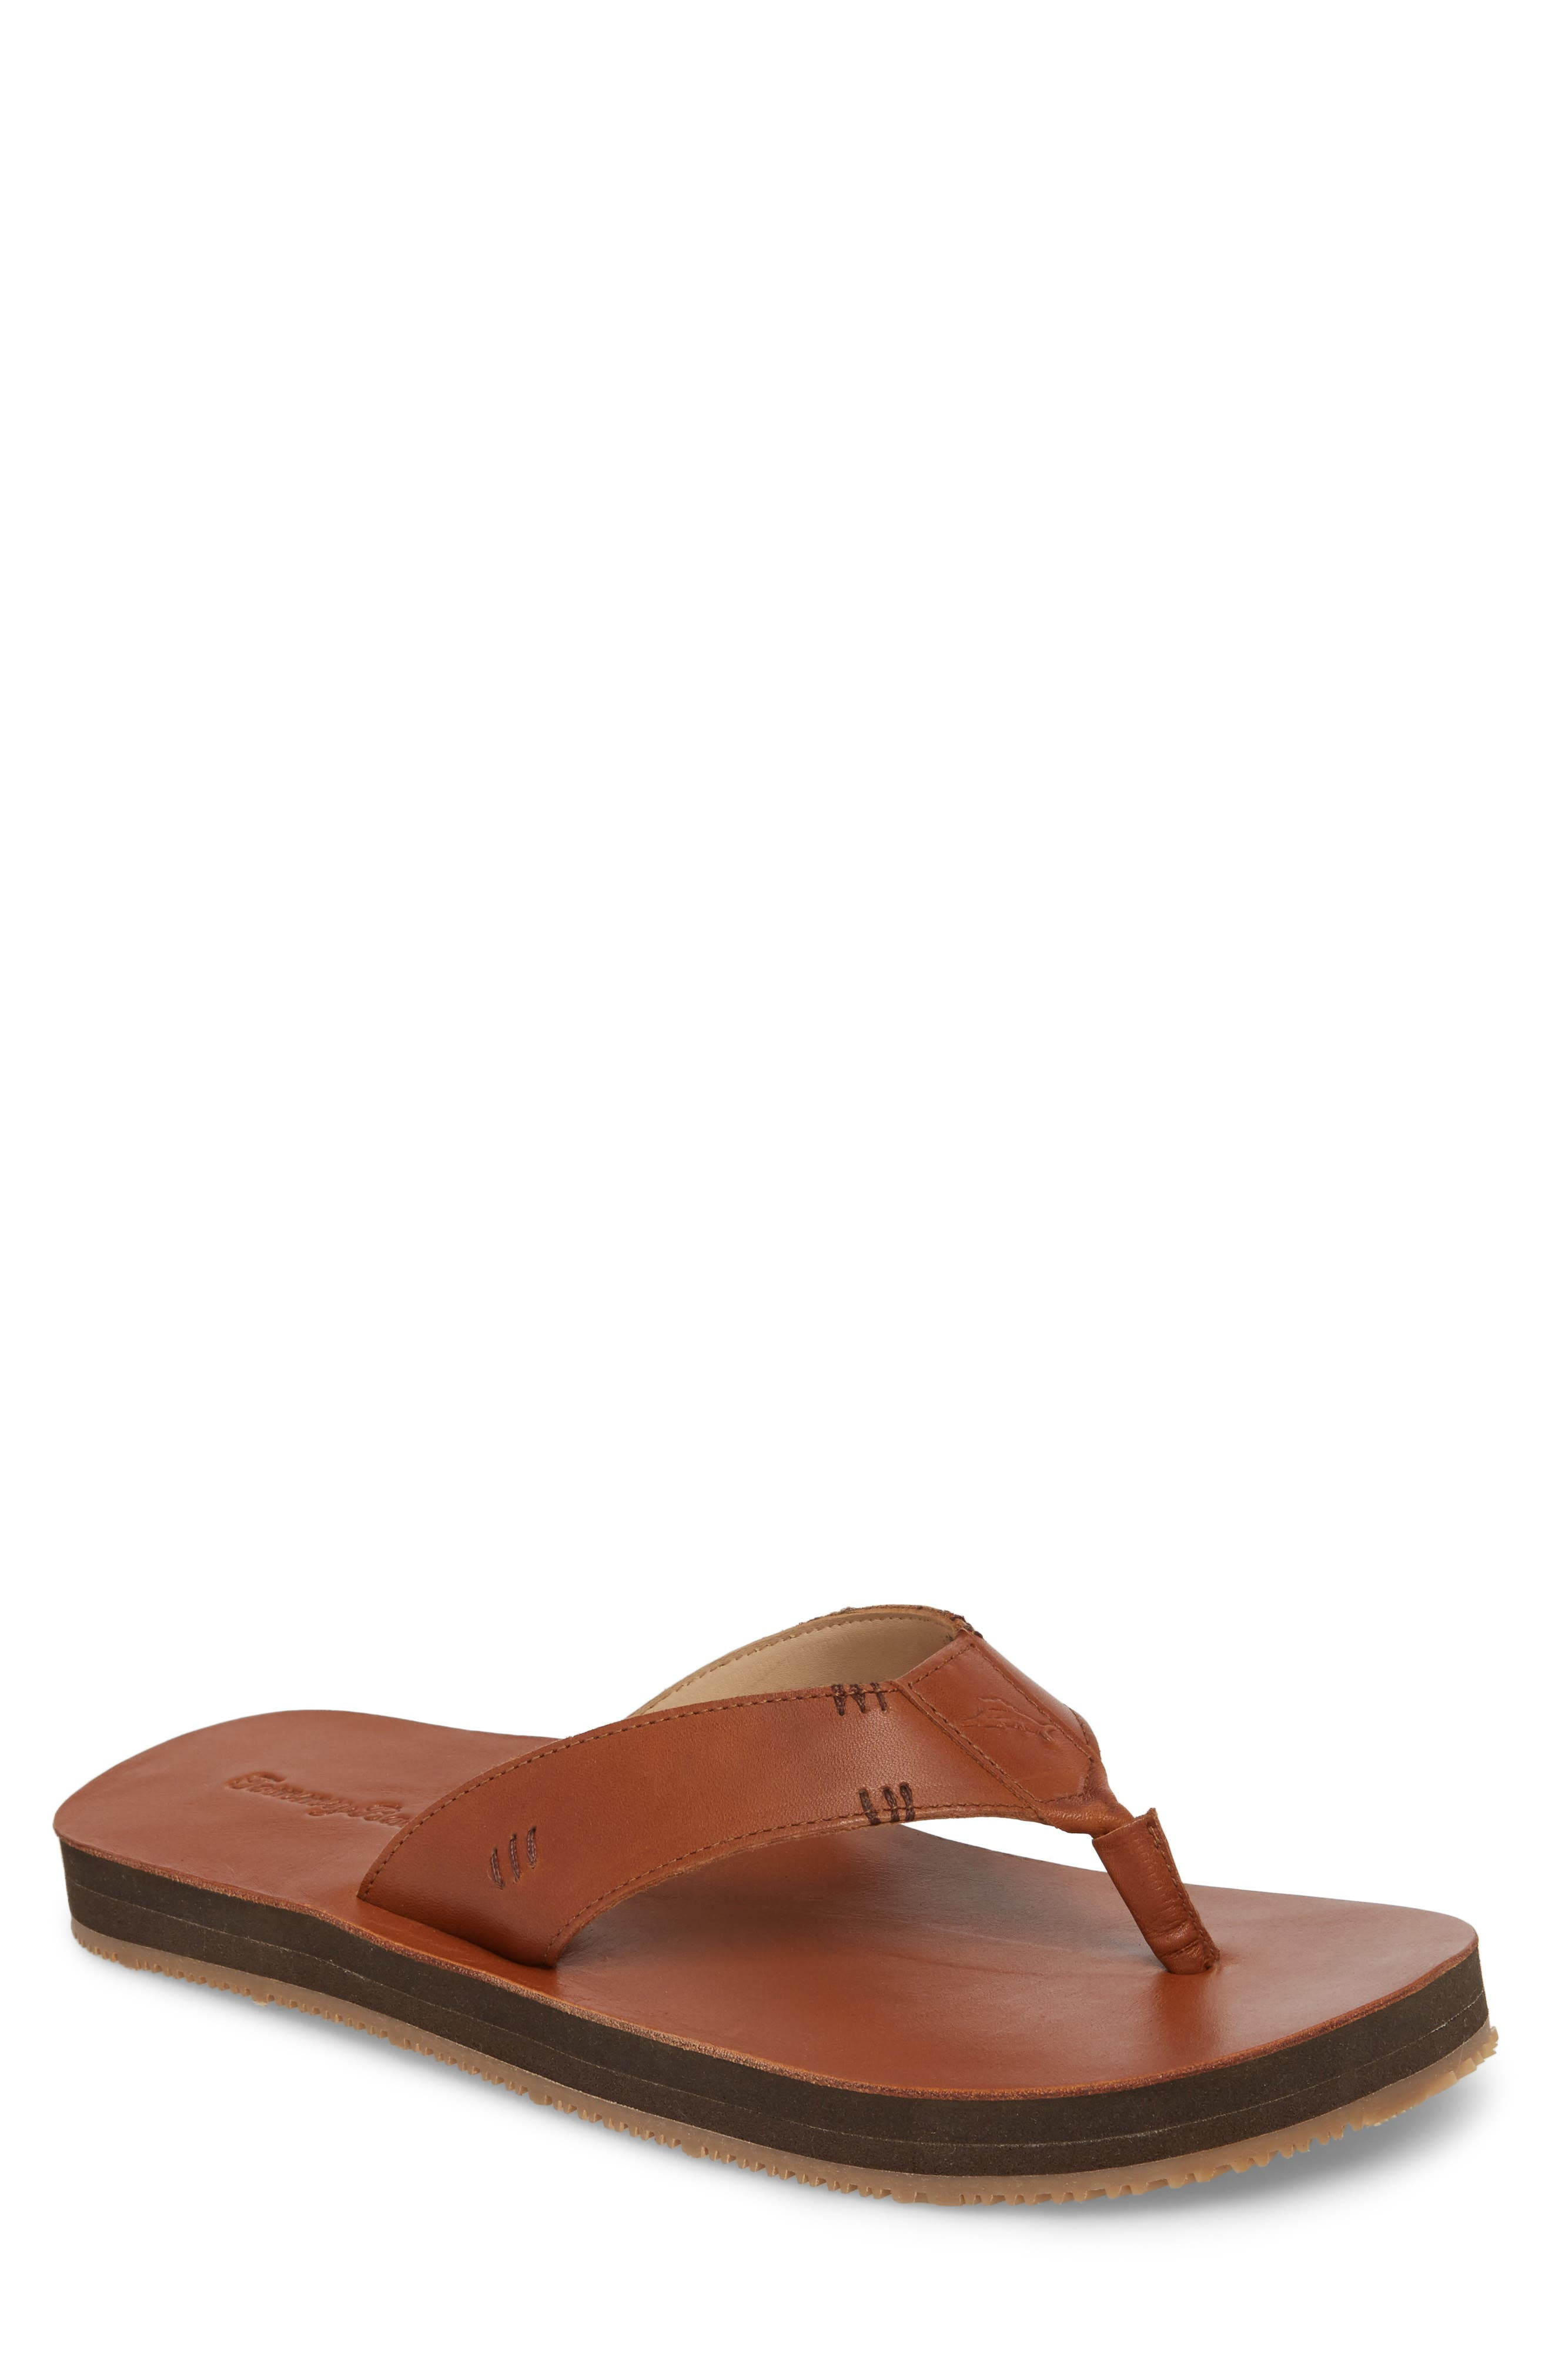 TOMMY BAHAMA, Adderly Flip Flop, Main thumbnail 1, color, TAN LEATHER